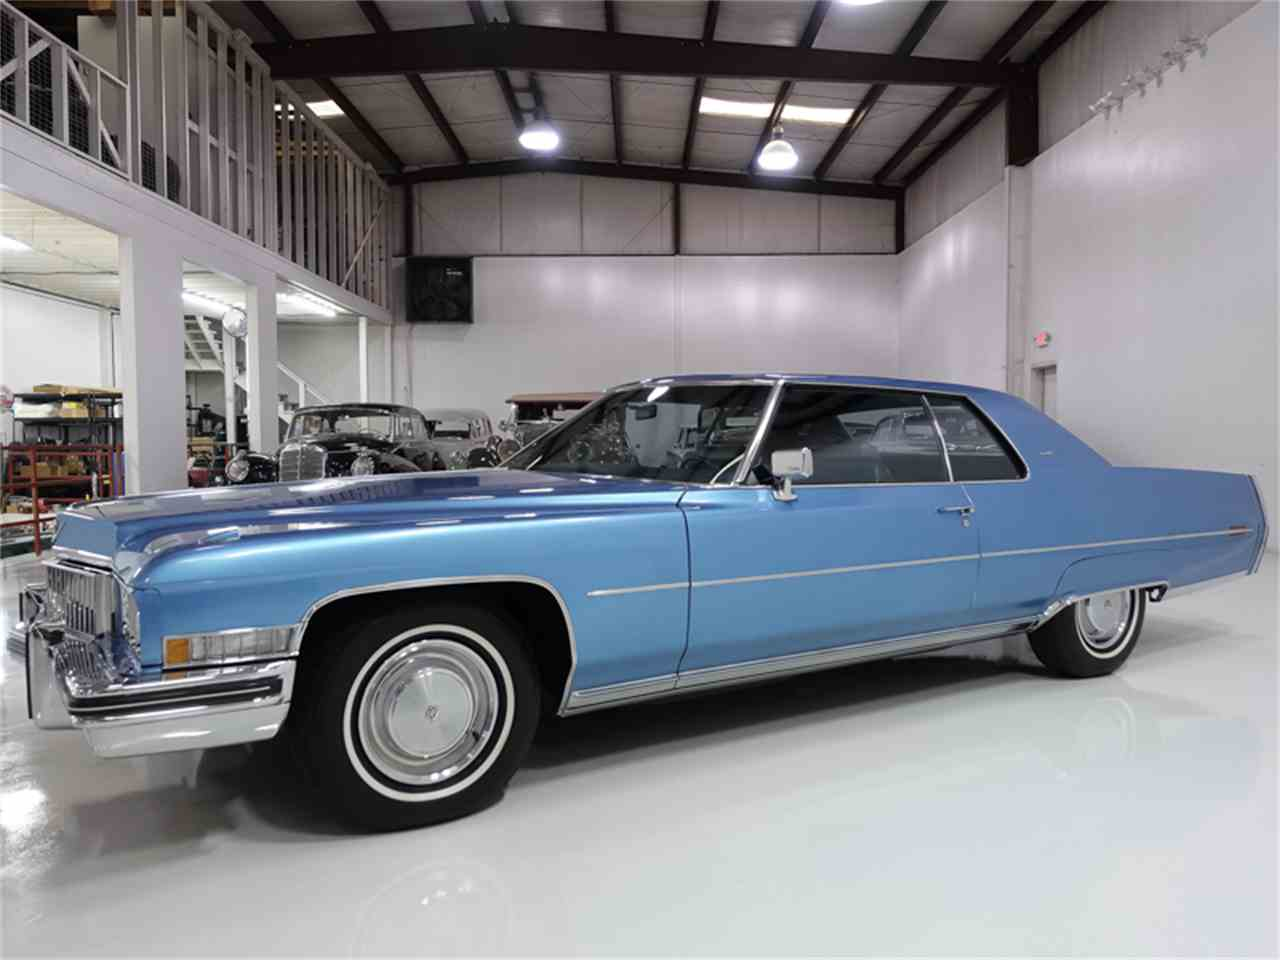 1973 Cadillac Coupe Deville For Sale Classiccars Com